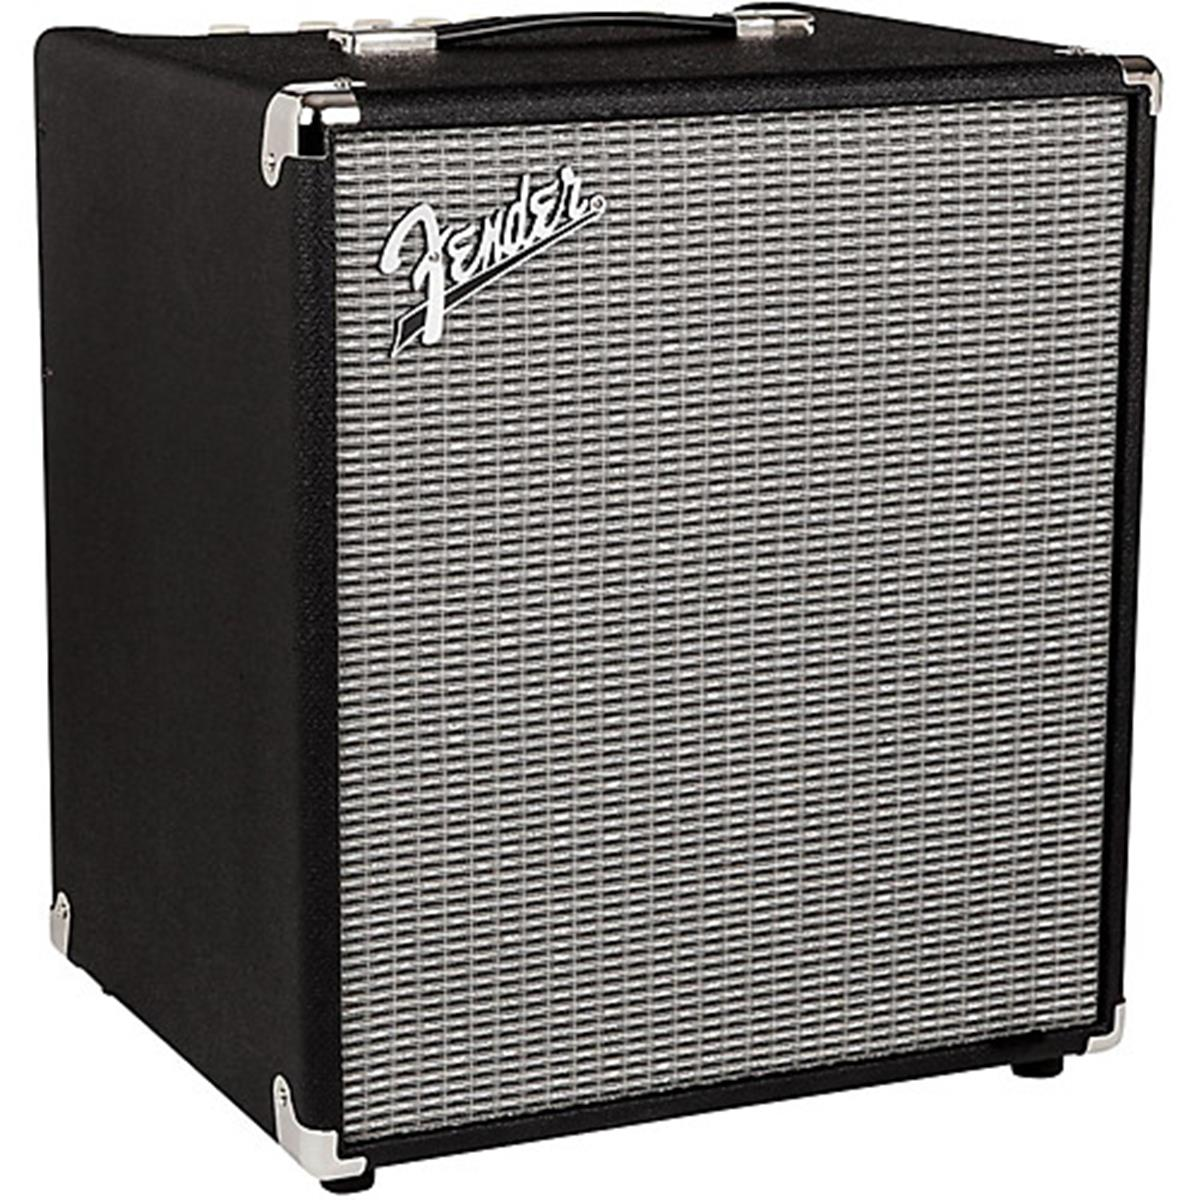 FENDER-RUMBLE-100-v3-sku-18435